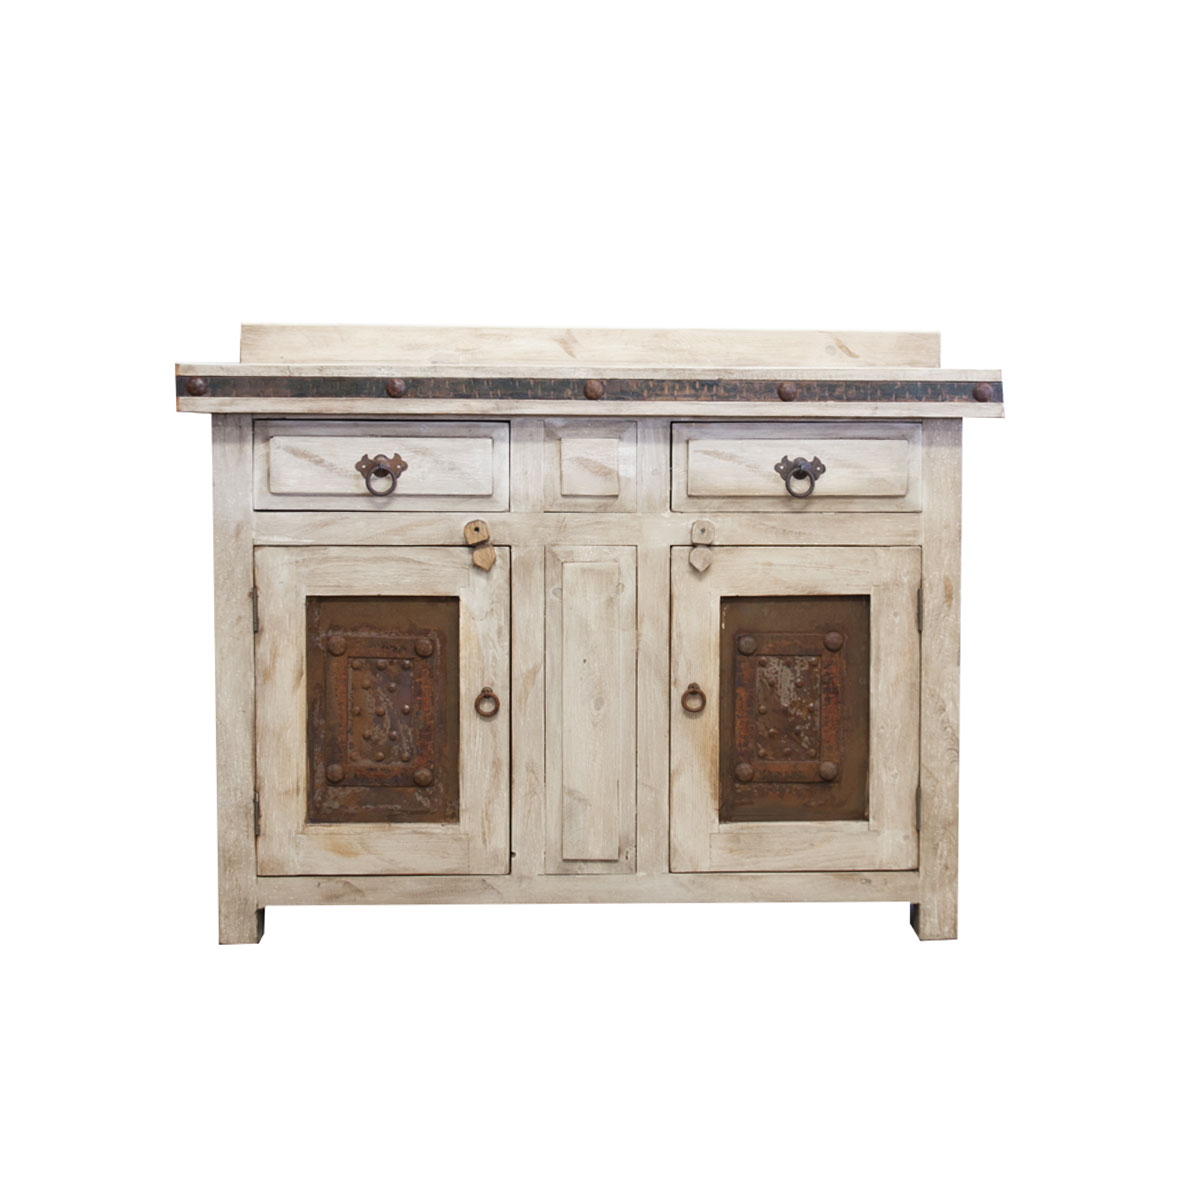 Order Rustic White Vanity Online Made From Solid Wood